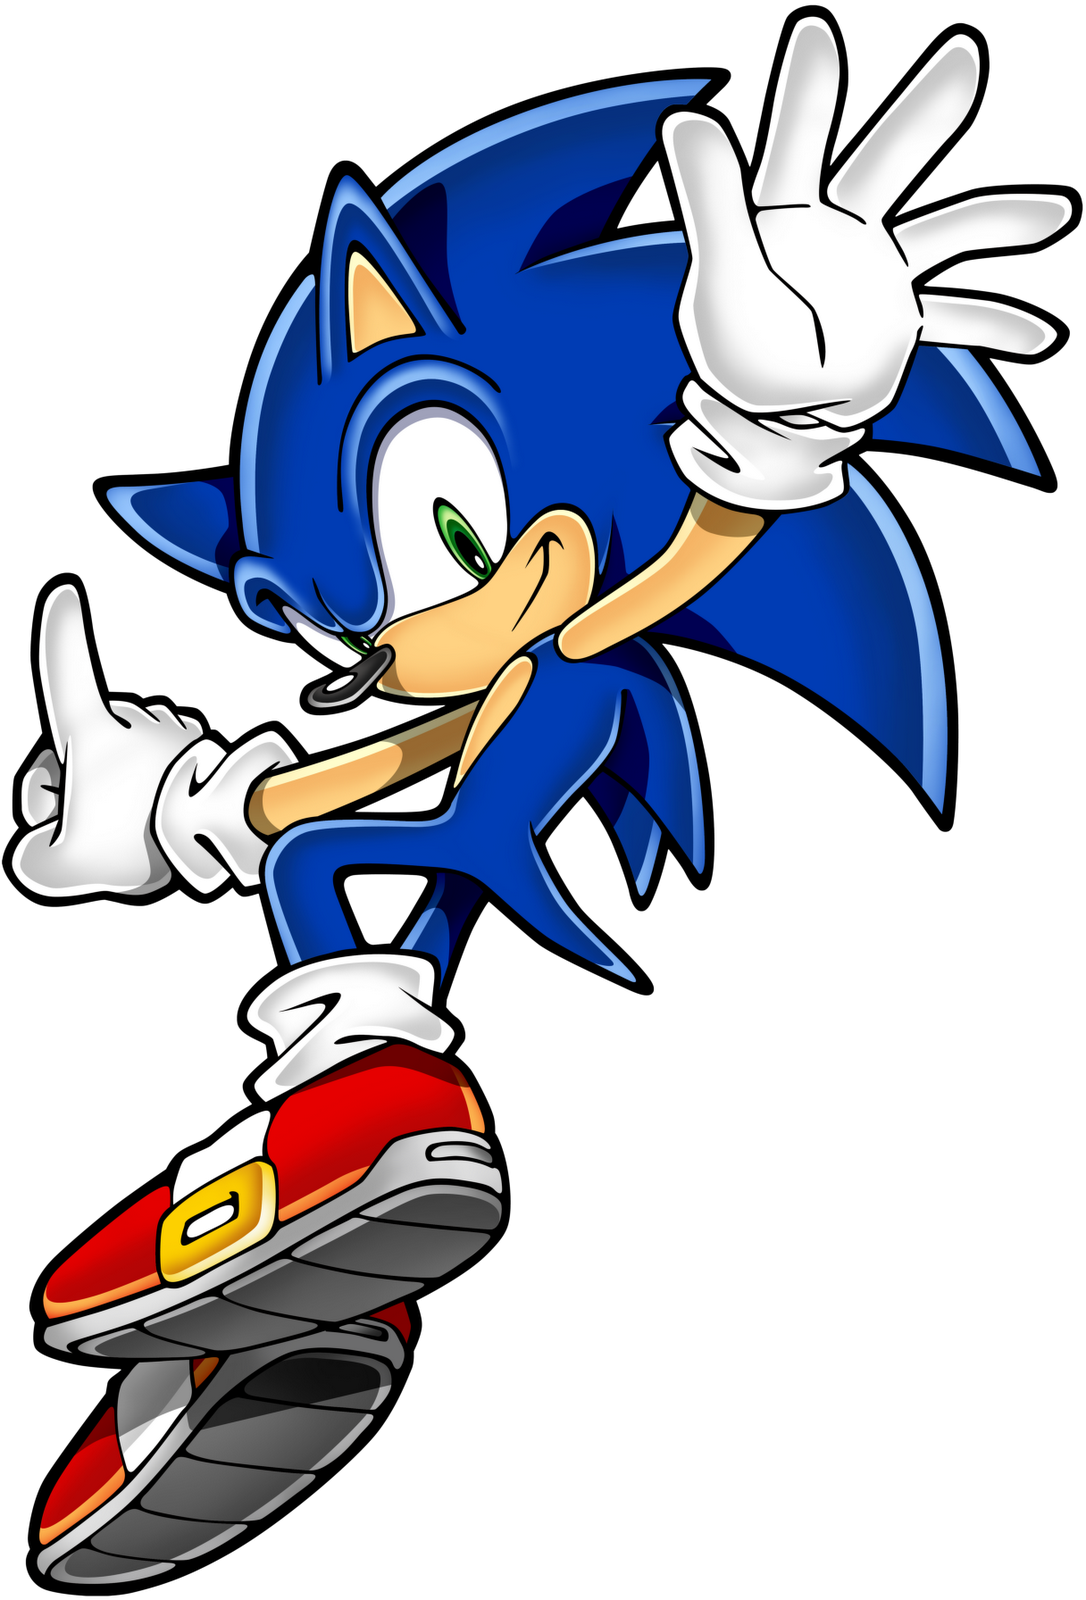 PNG Transparent Sonic image #20661